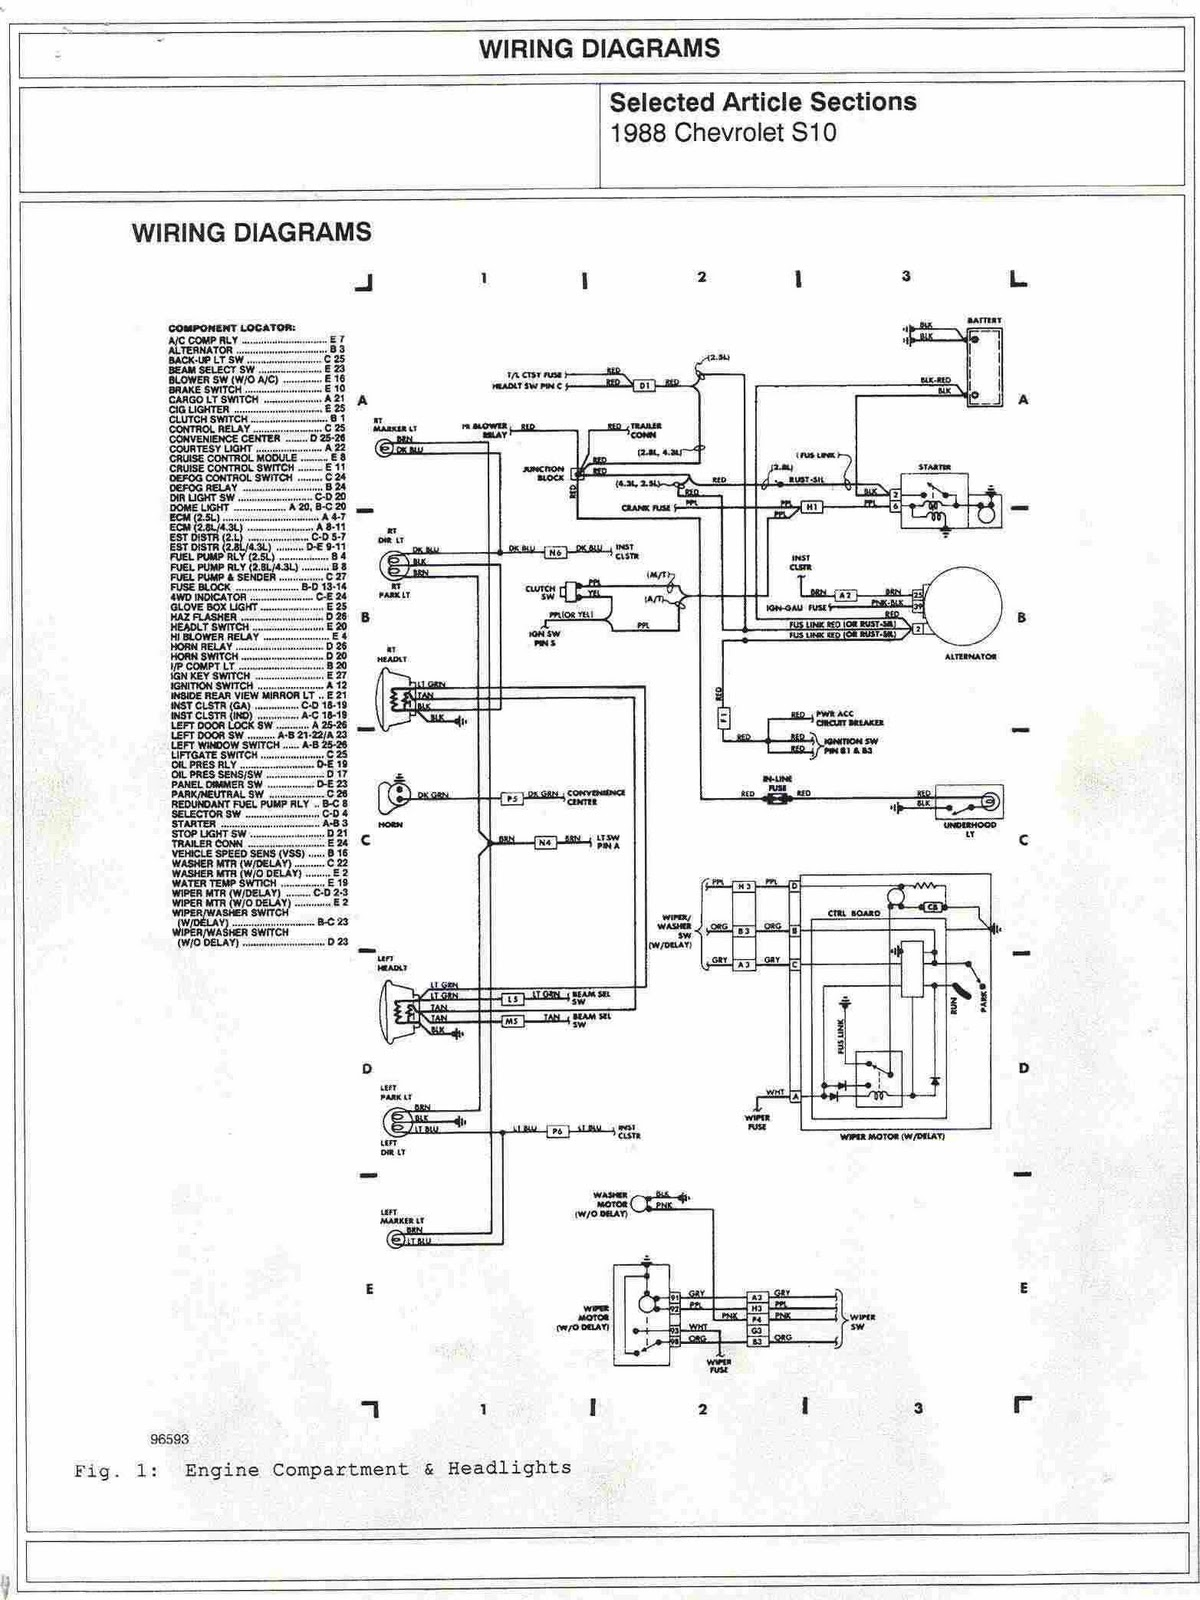 1988+Chevrolet+S10+Engine+Compartment+and+Headlights+Wiring+Diagrams 95 s10 wiring diagram 95 tahoe wiring diagram \u2022 wiring diagrams 2006 Dodge Ram Tail Light Wiring Diagram at cita.asia